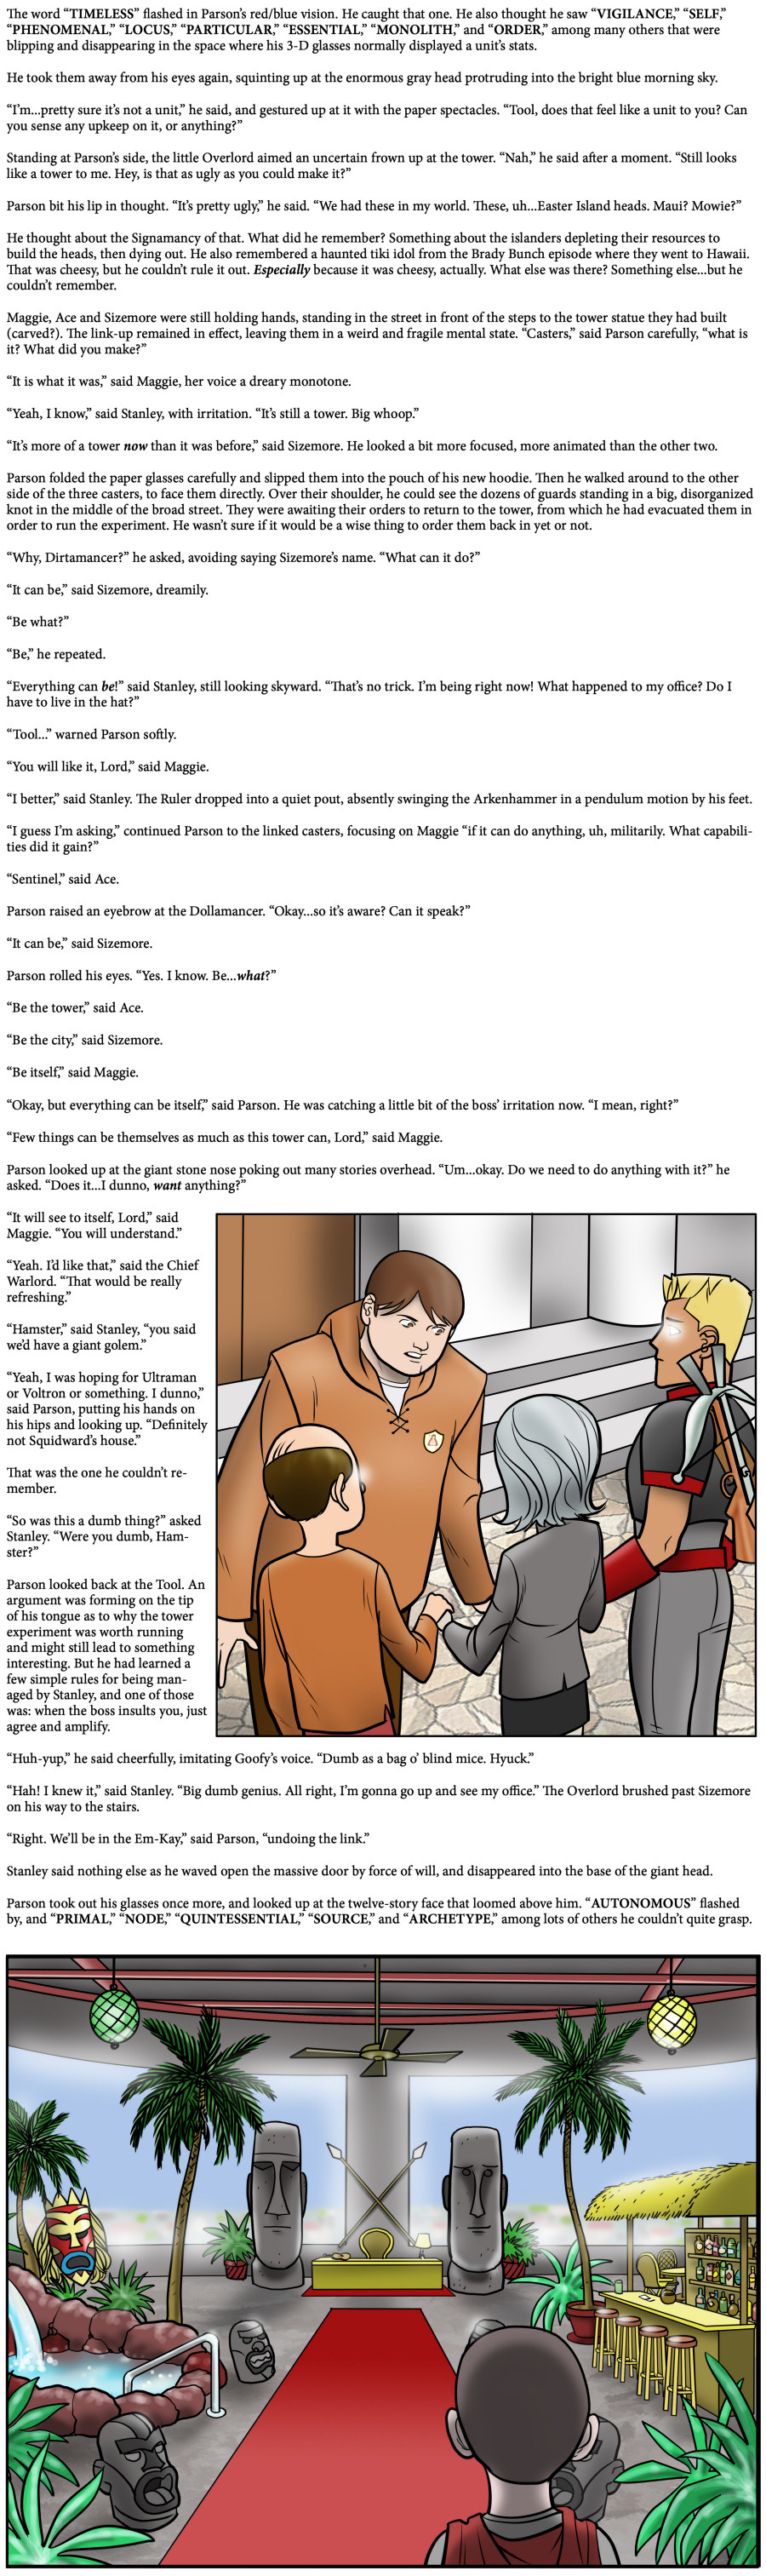 Comic - Book 3 - Page 54